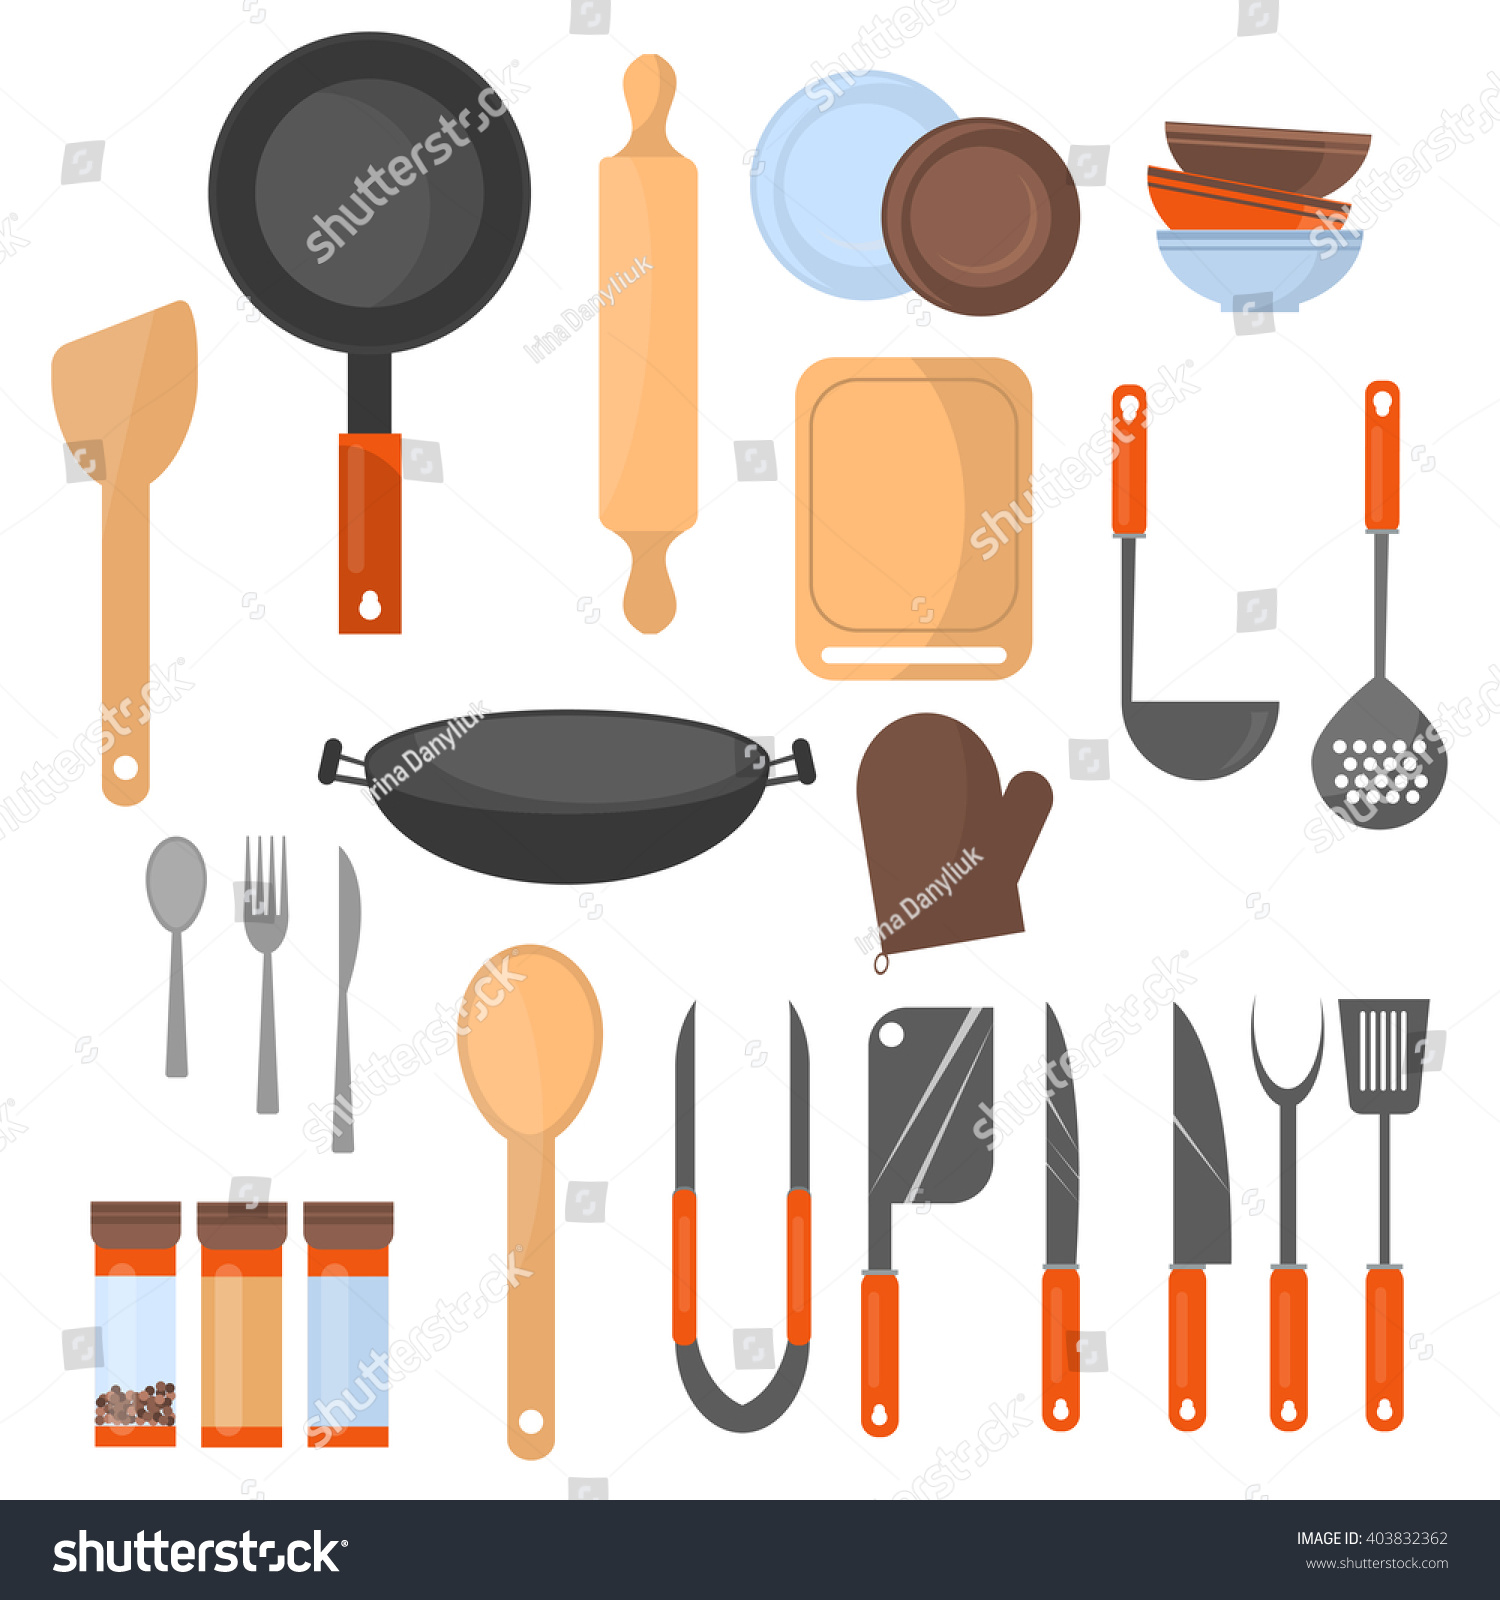 Kitchen equipment and their uses - Set Of Kitchen Utensil And Collection Of Cookware Icons Cooking Tools And Kitchenware Equipment